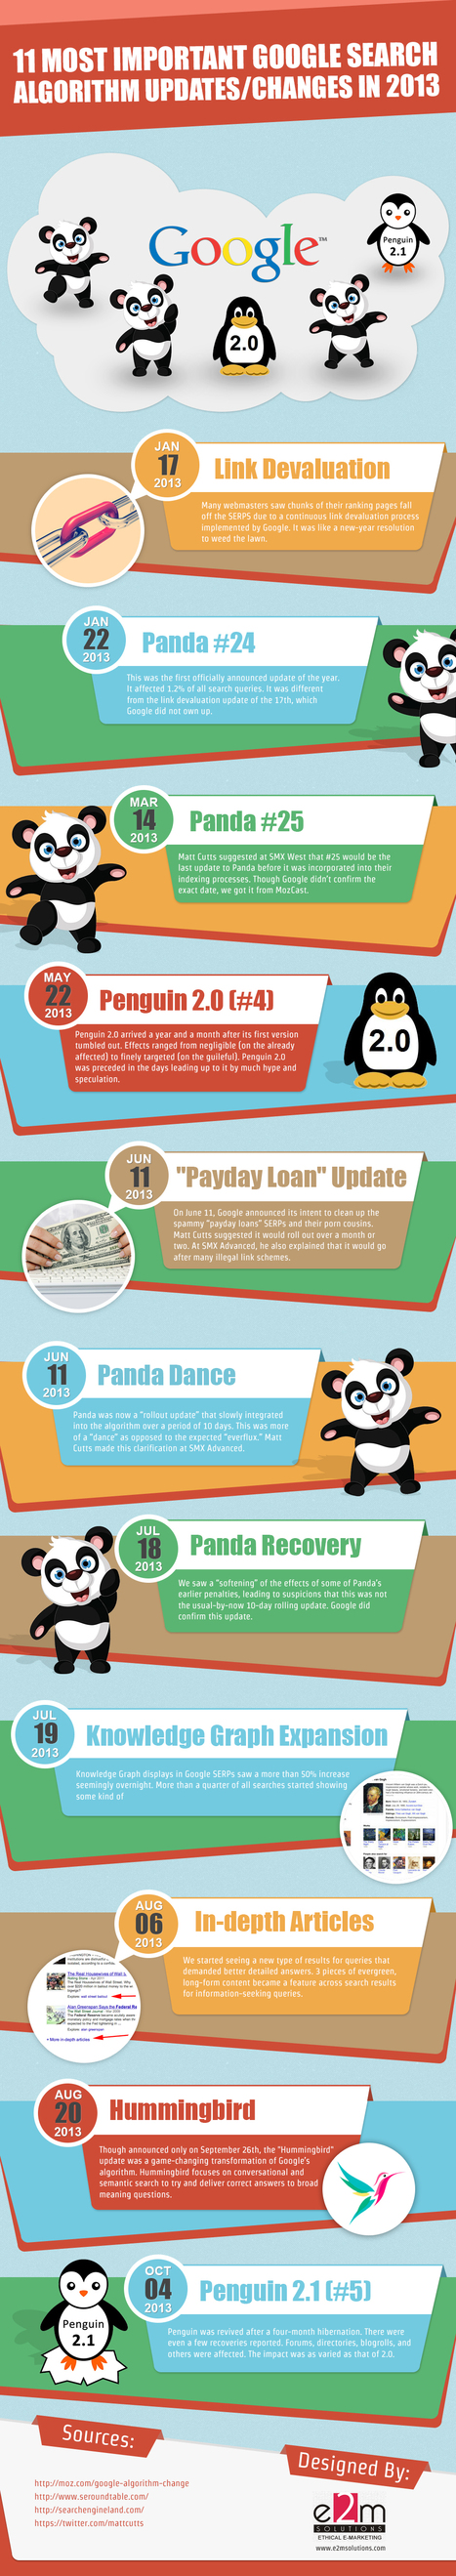 11 Most Important Google Search Algorithm Updates in 2013 [INFOGRAPHIC] | MarketingHits | Scoop.it